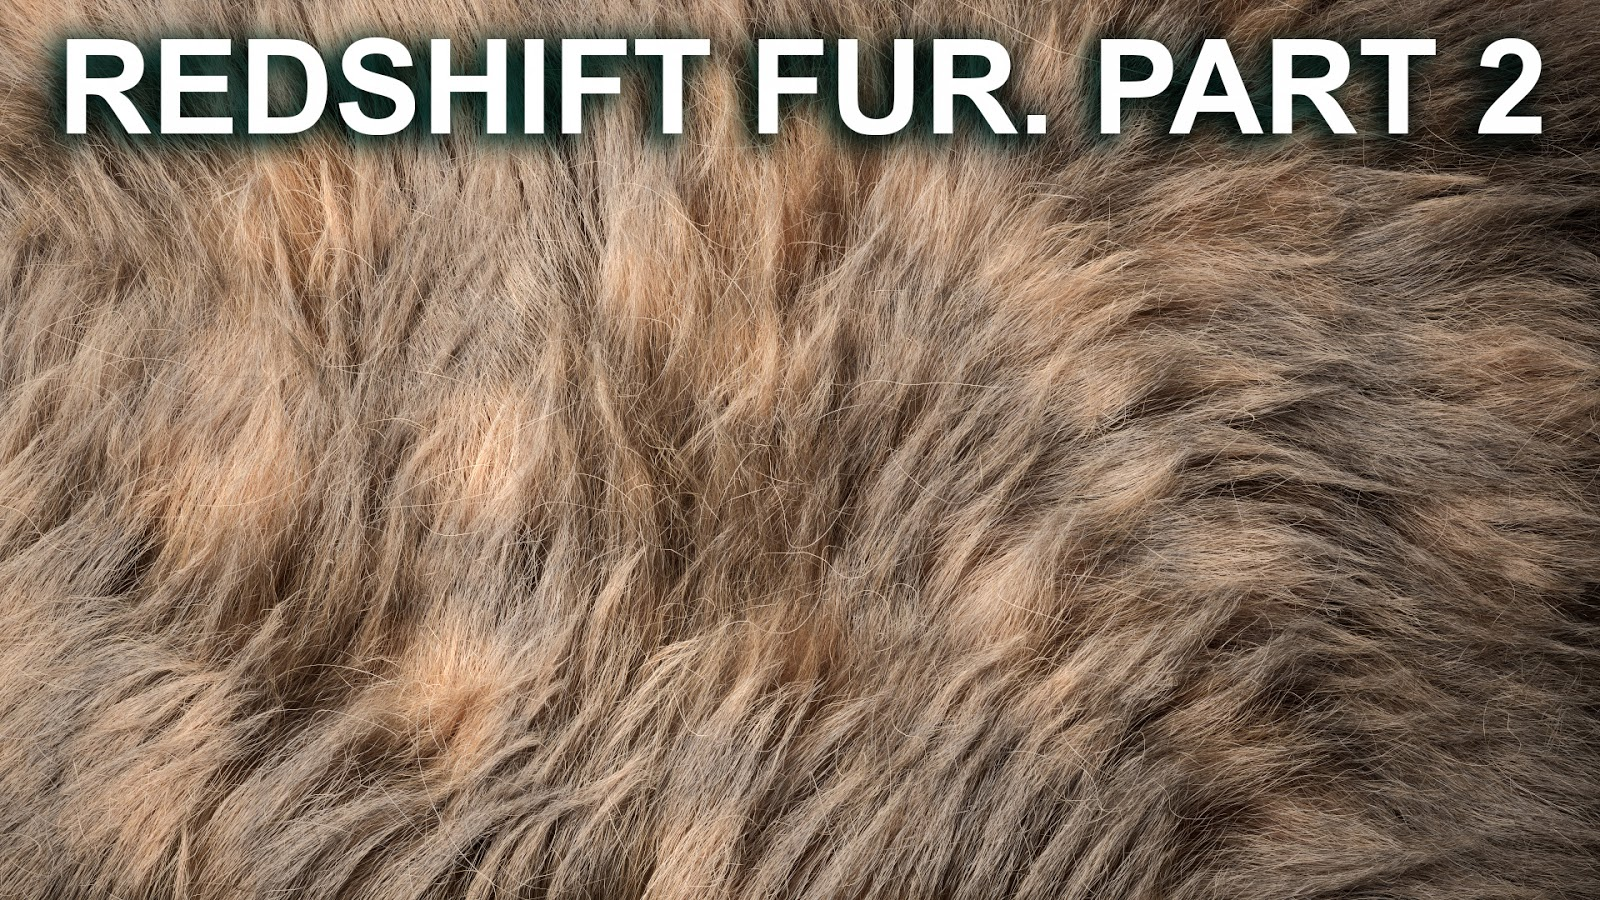 redshift_fur_part2.jpg